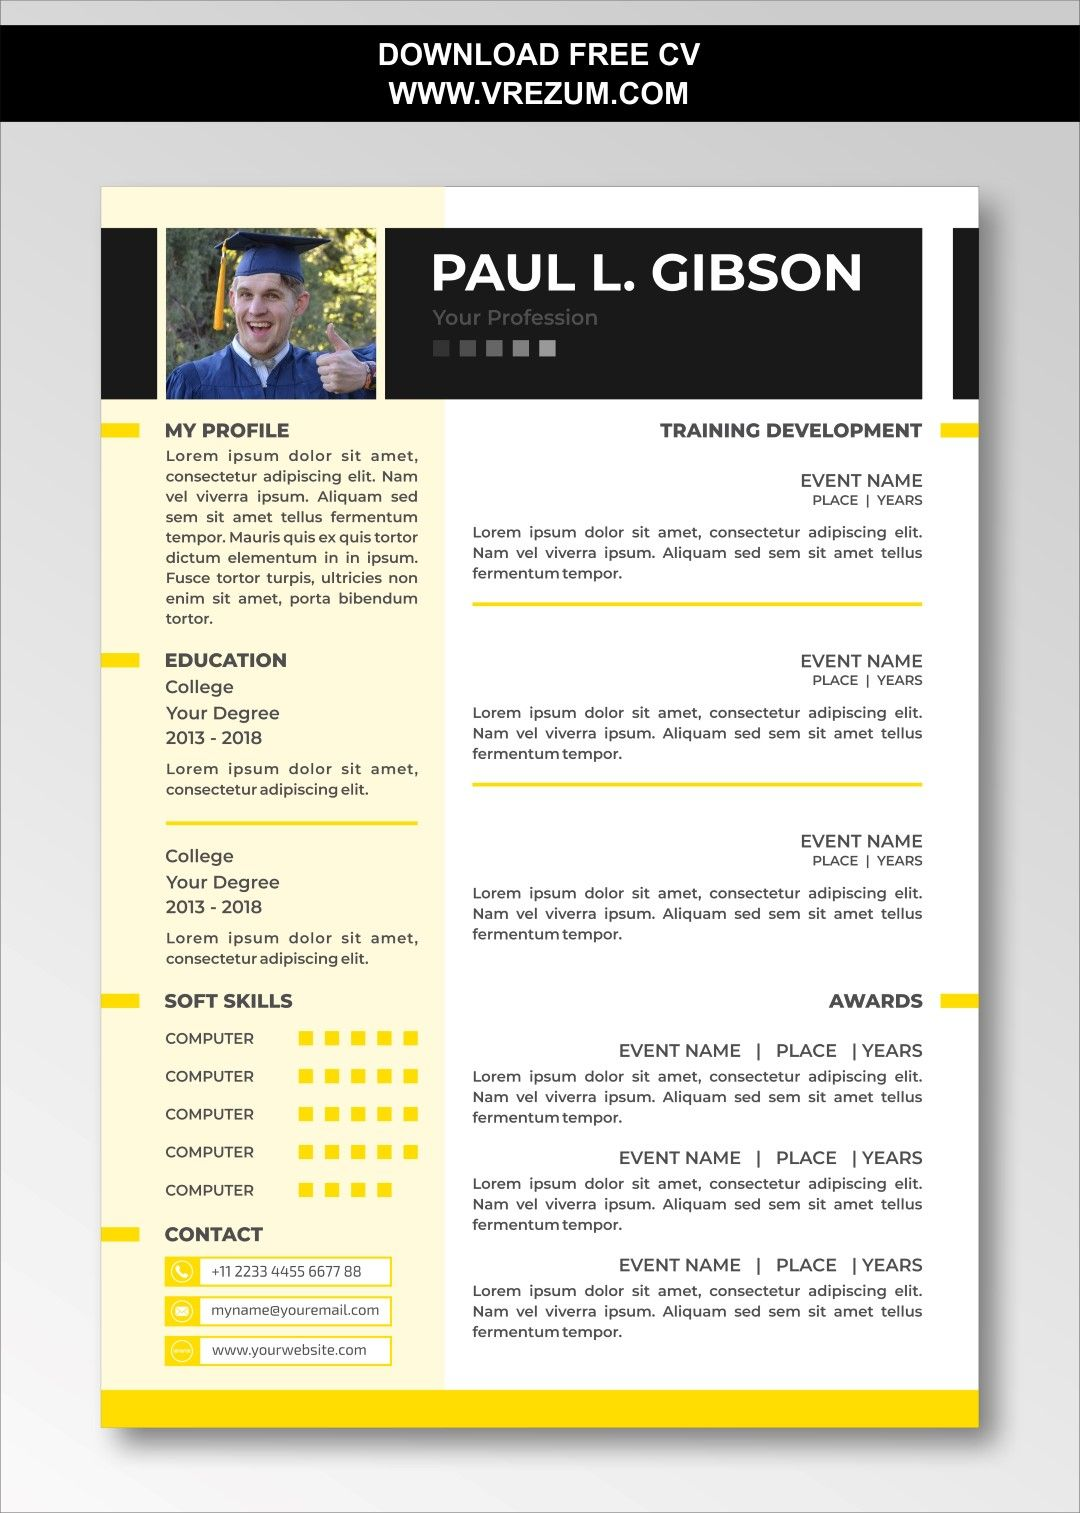 (EDITABLE) FREE CV Templates For Graduate School in 2020